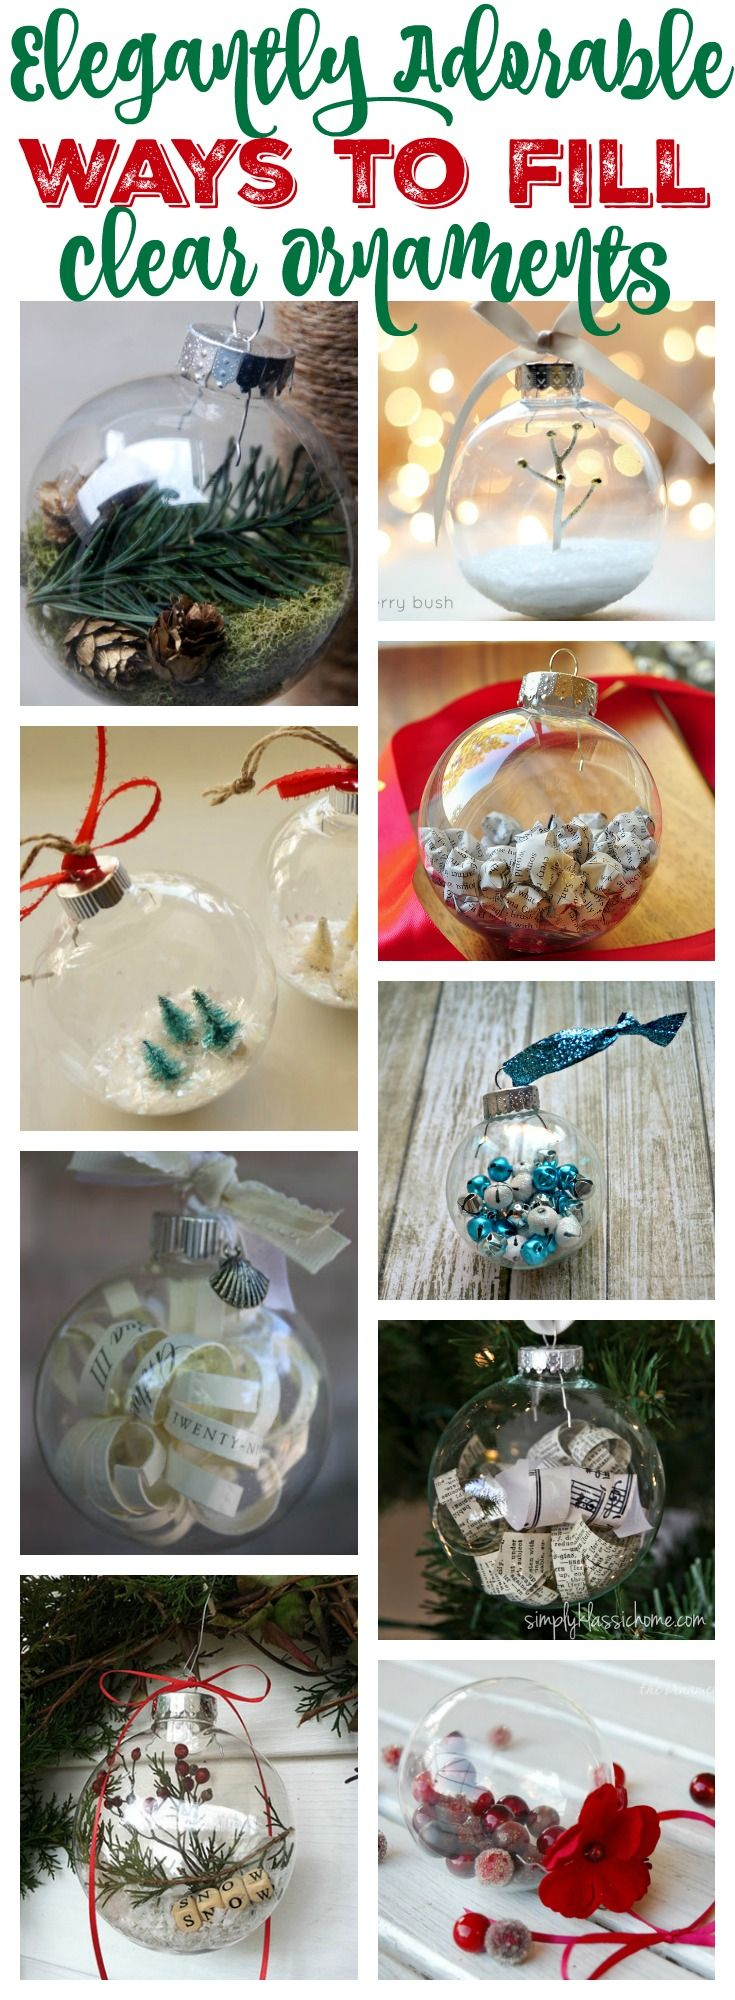 20 elegantly adorable ways to fill clear ornaments christmas craft elegantly adorable ways to fill clear ornaments at thehappyhousie solutioingenieria Choice Image